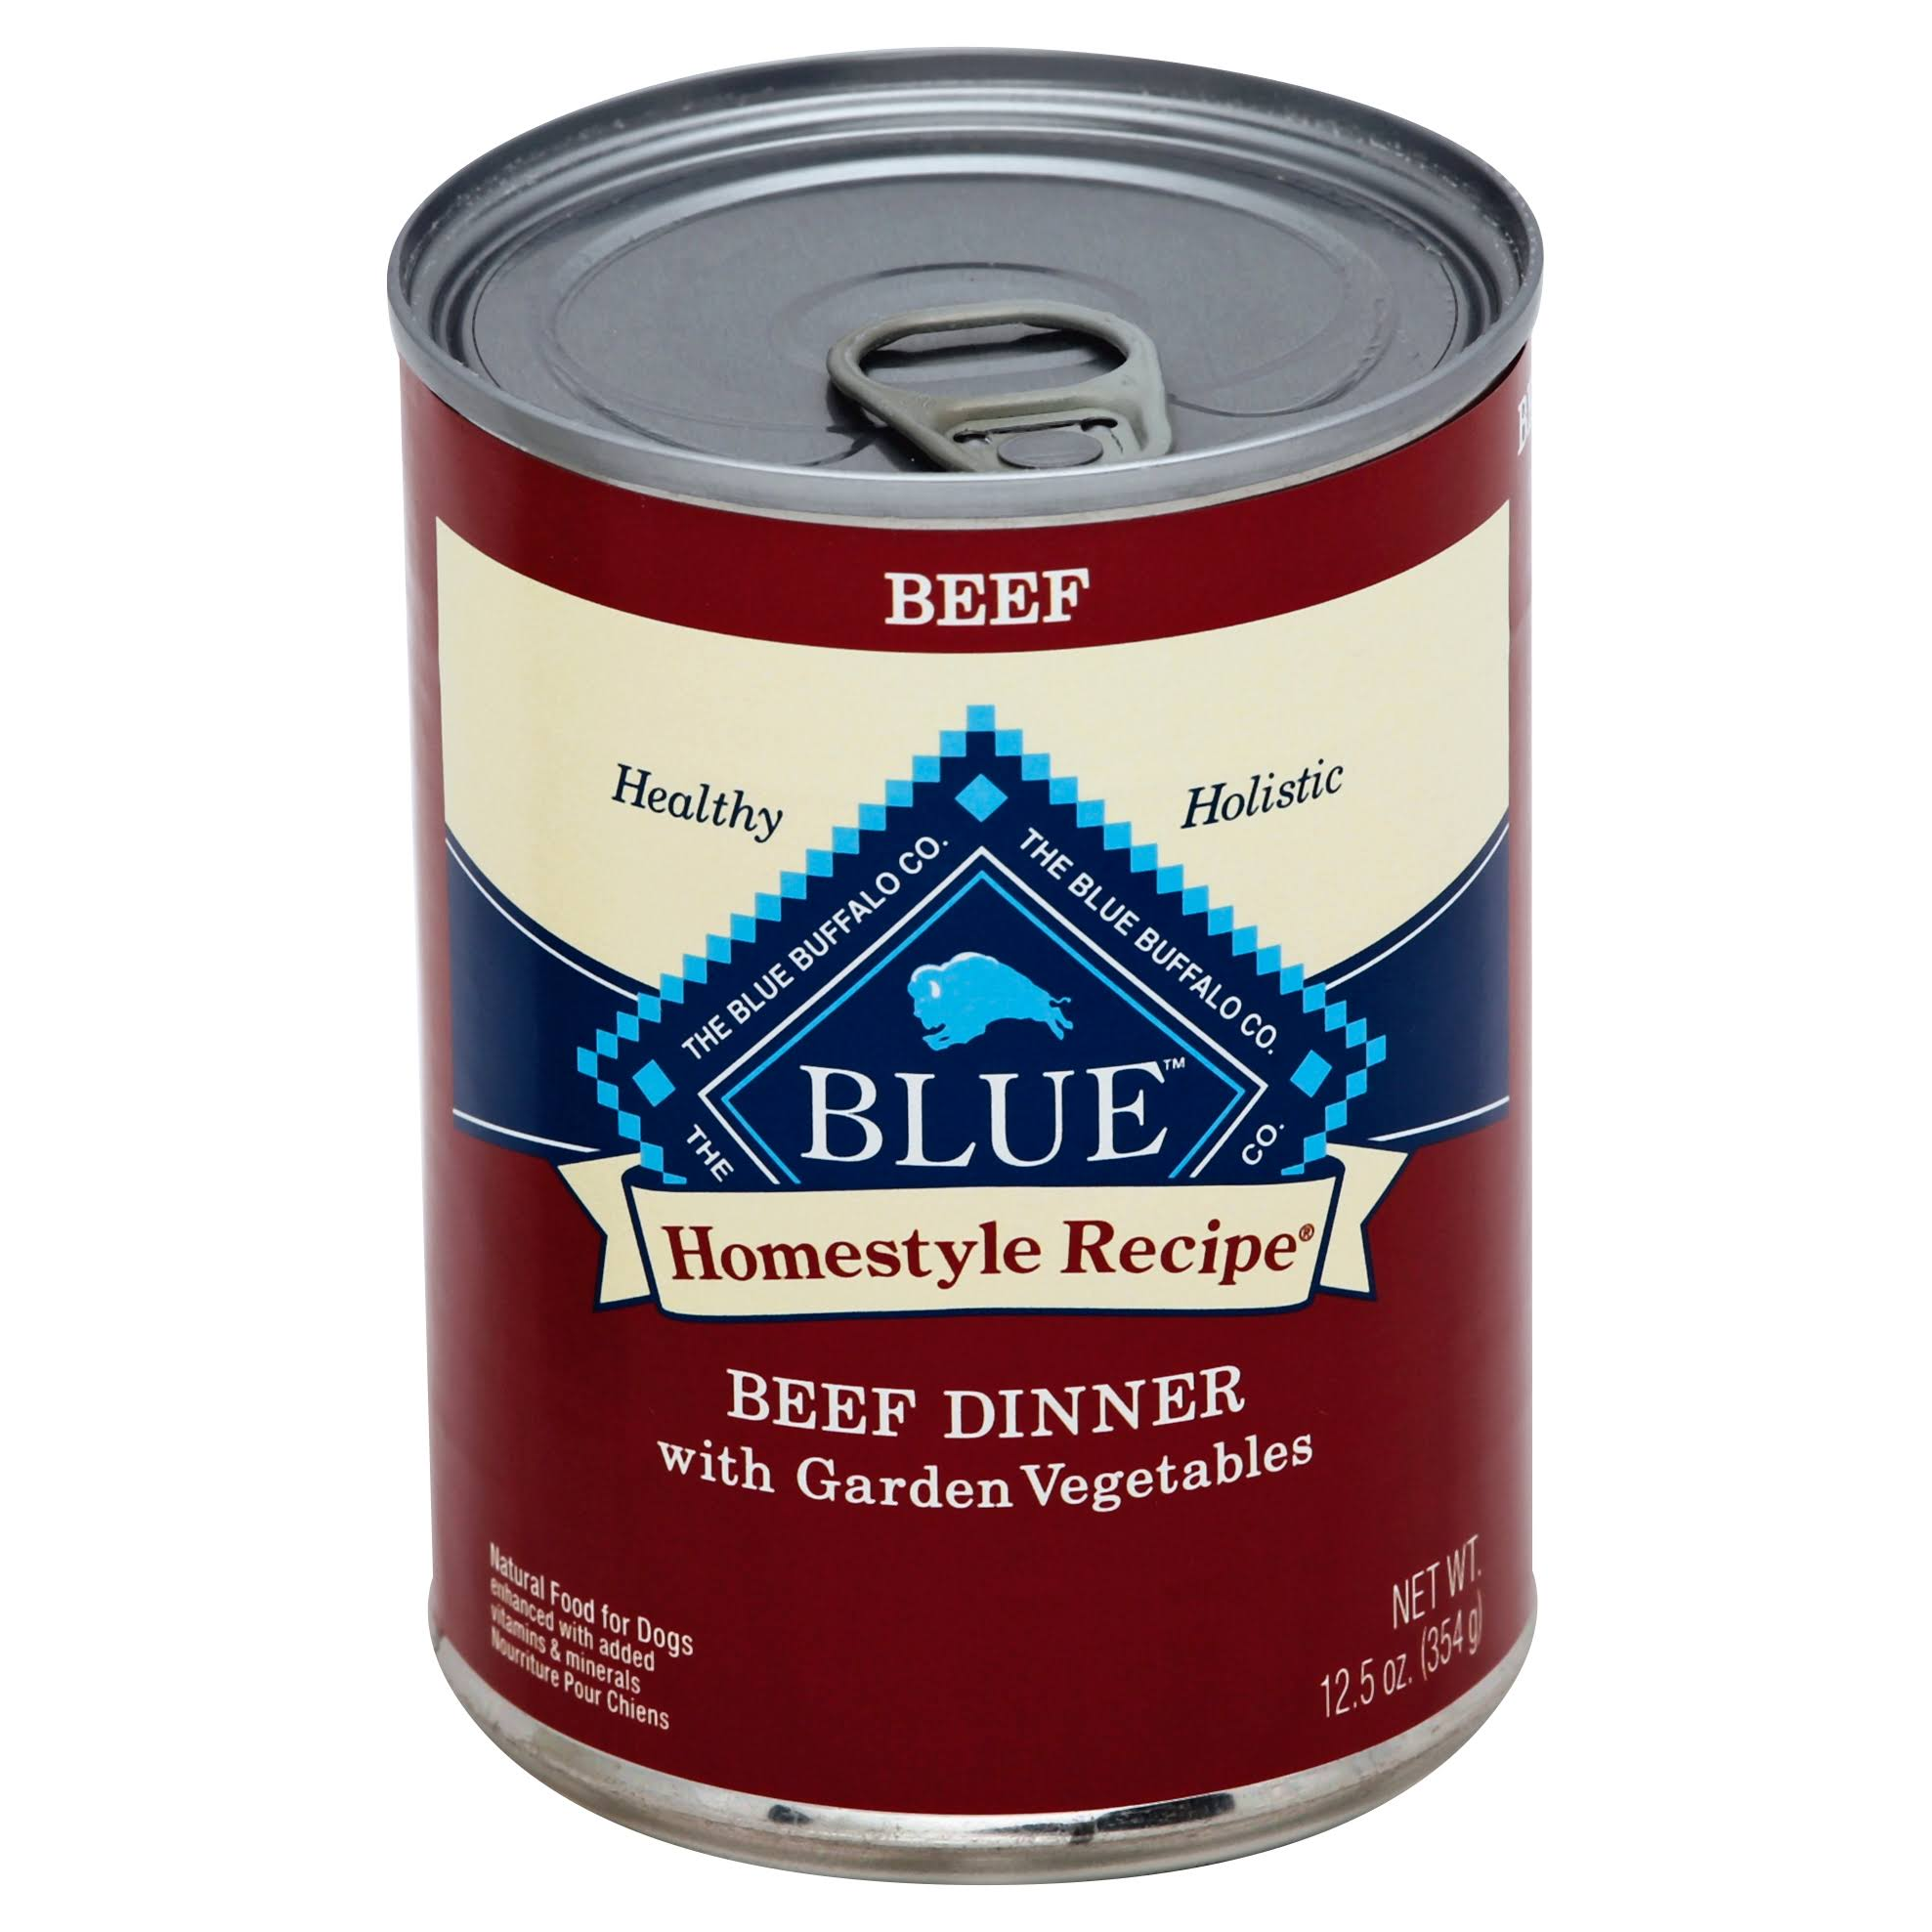 Blue Buffalo Homestyle Recipe Canned Dog Food - Beef Dinner, 12.5oz